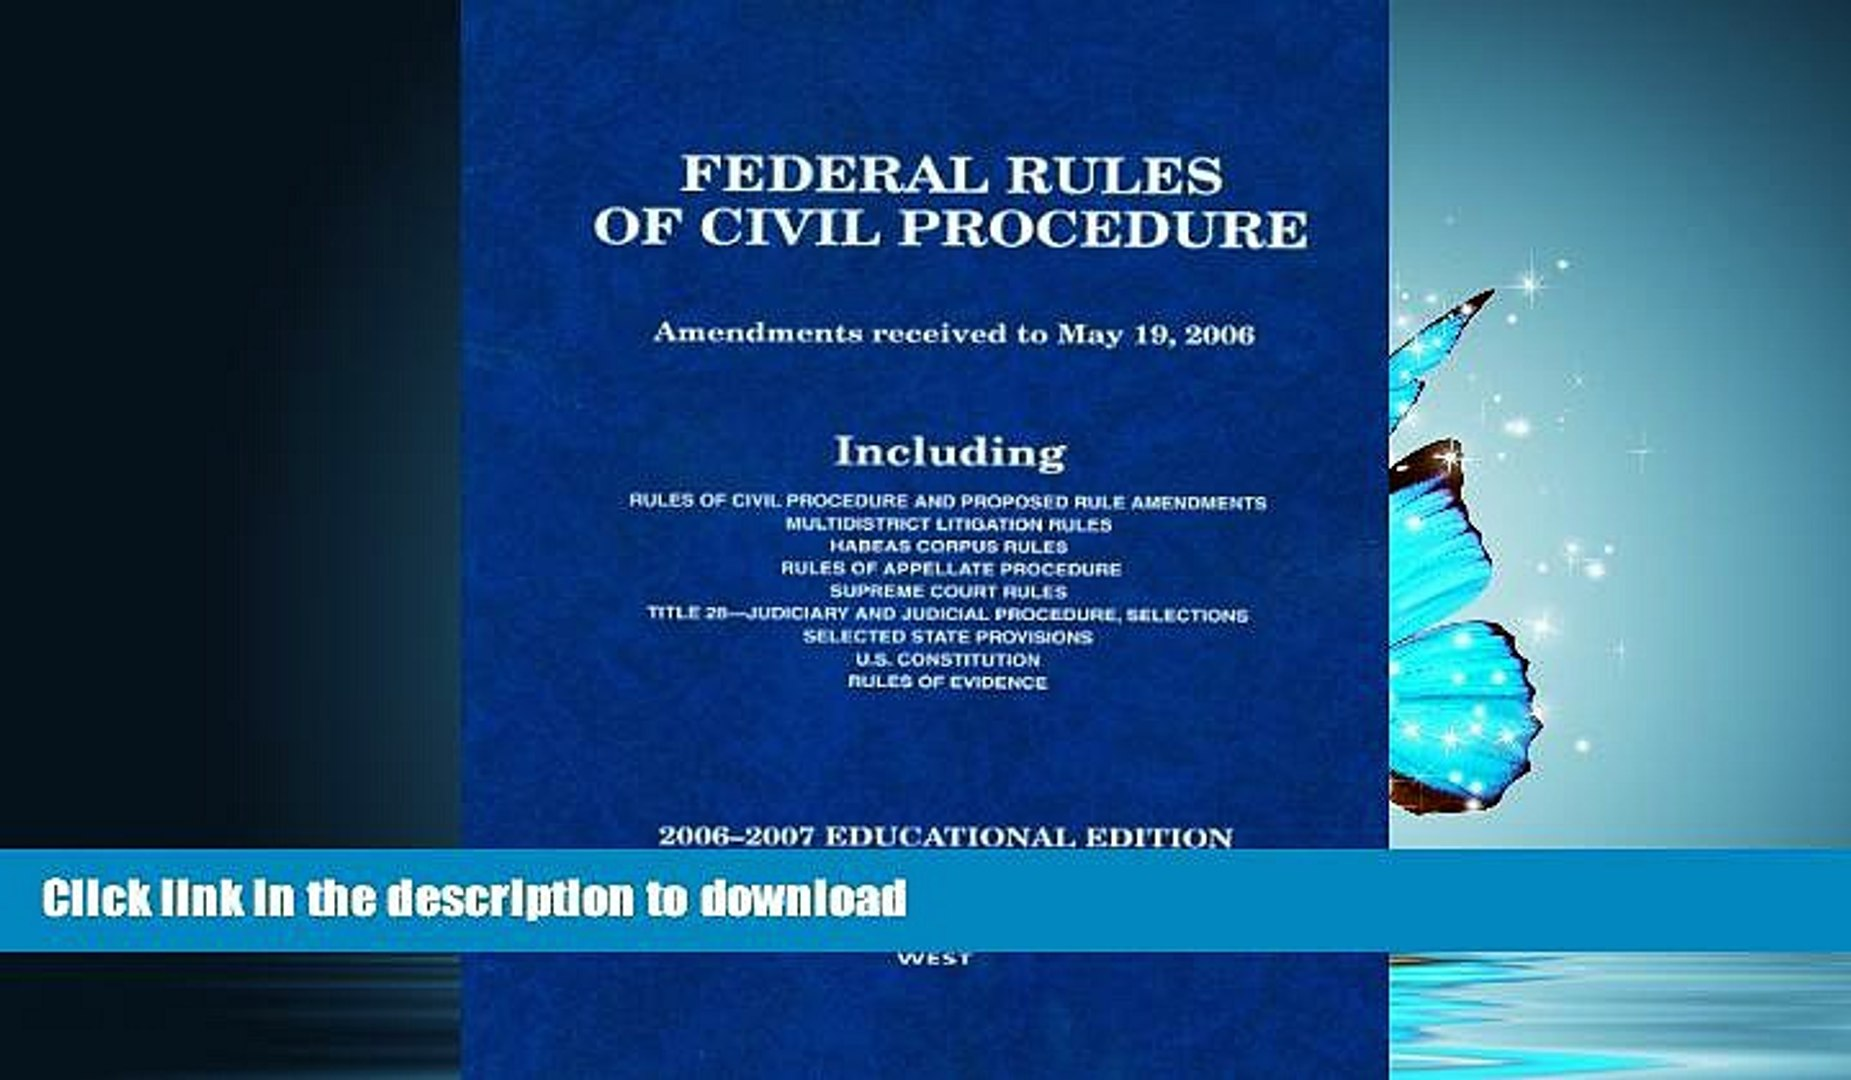 READ ONLINE Federal Rules of Civil Procedure: Amendments received to May 19, 2006, 2006-2007